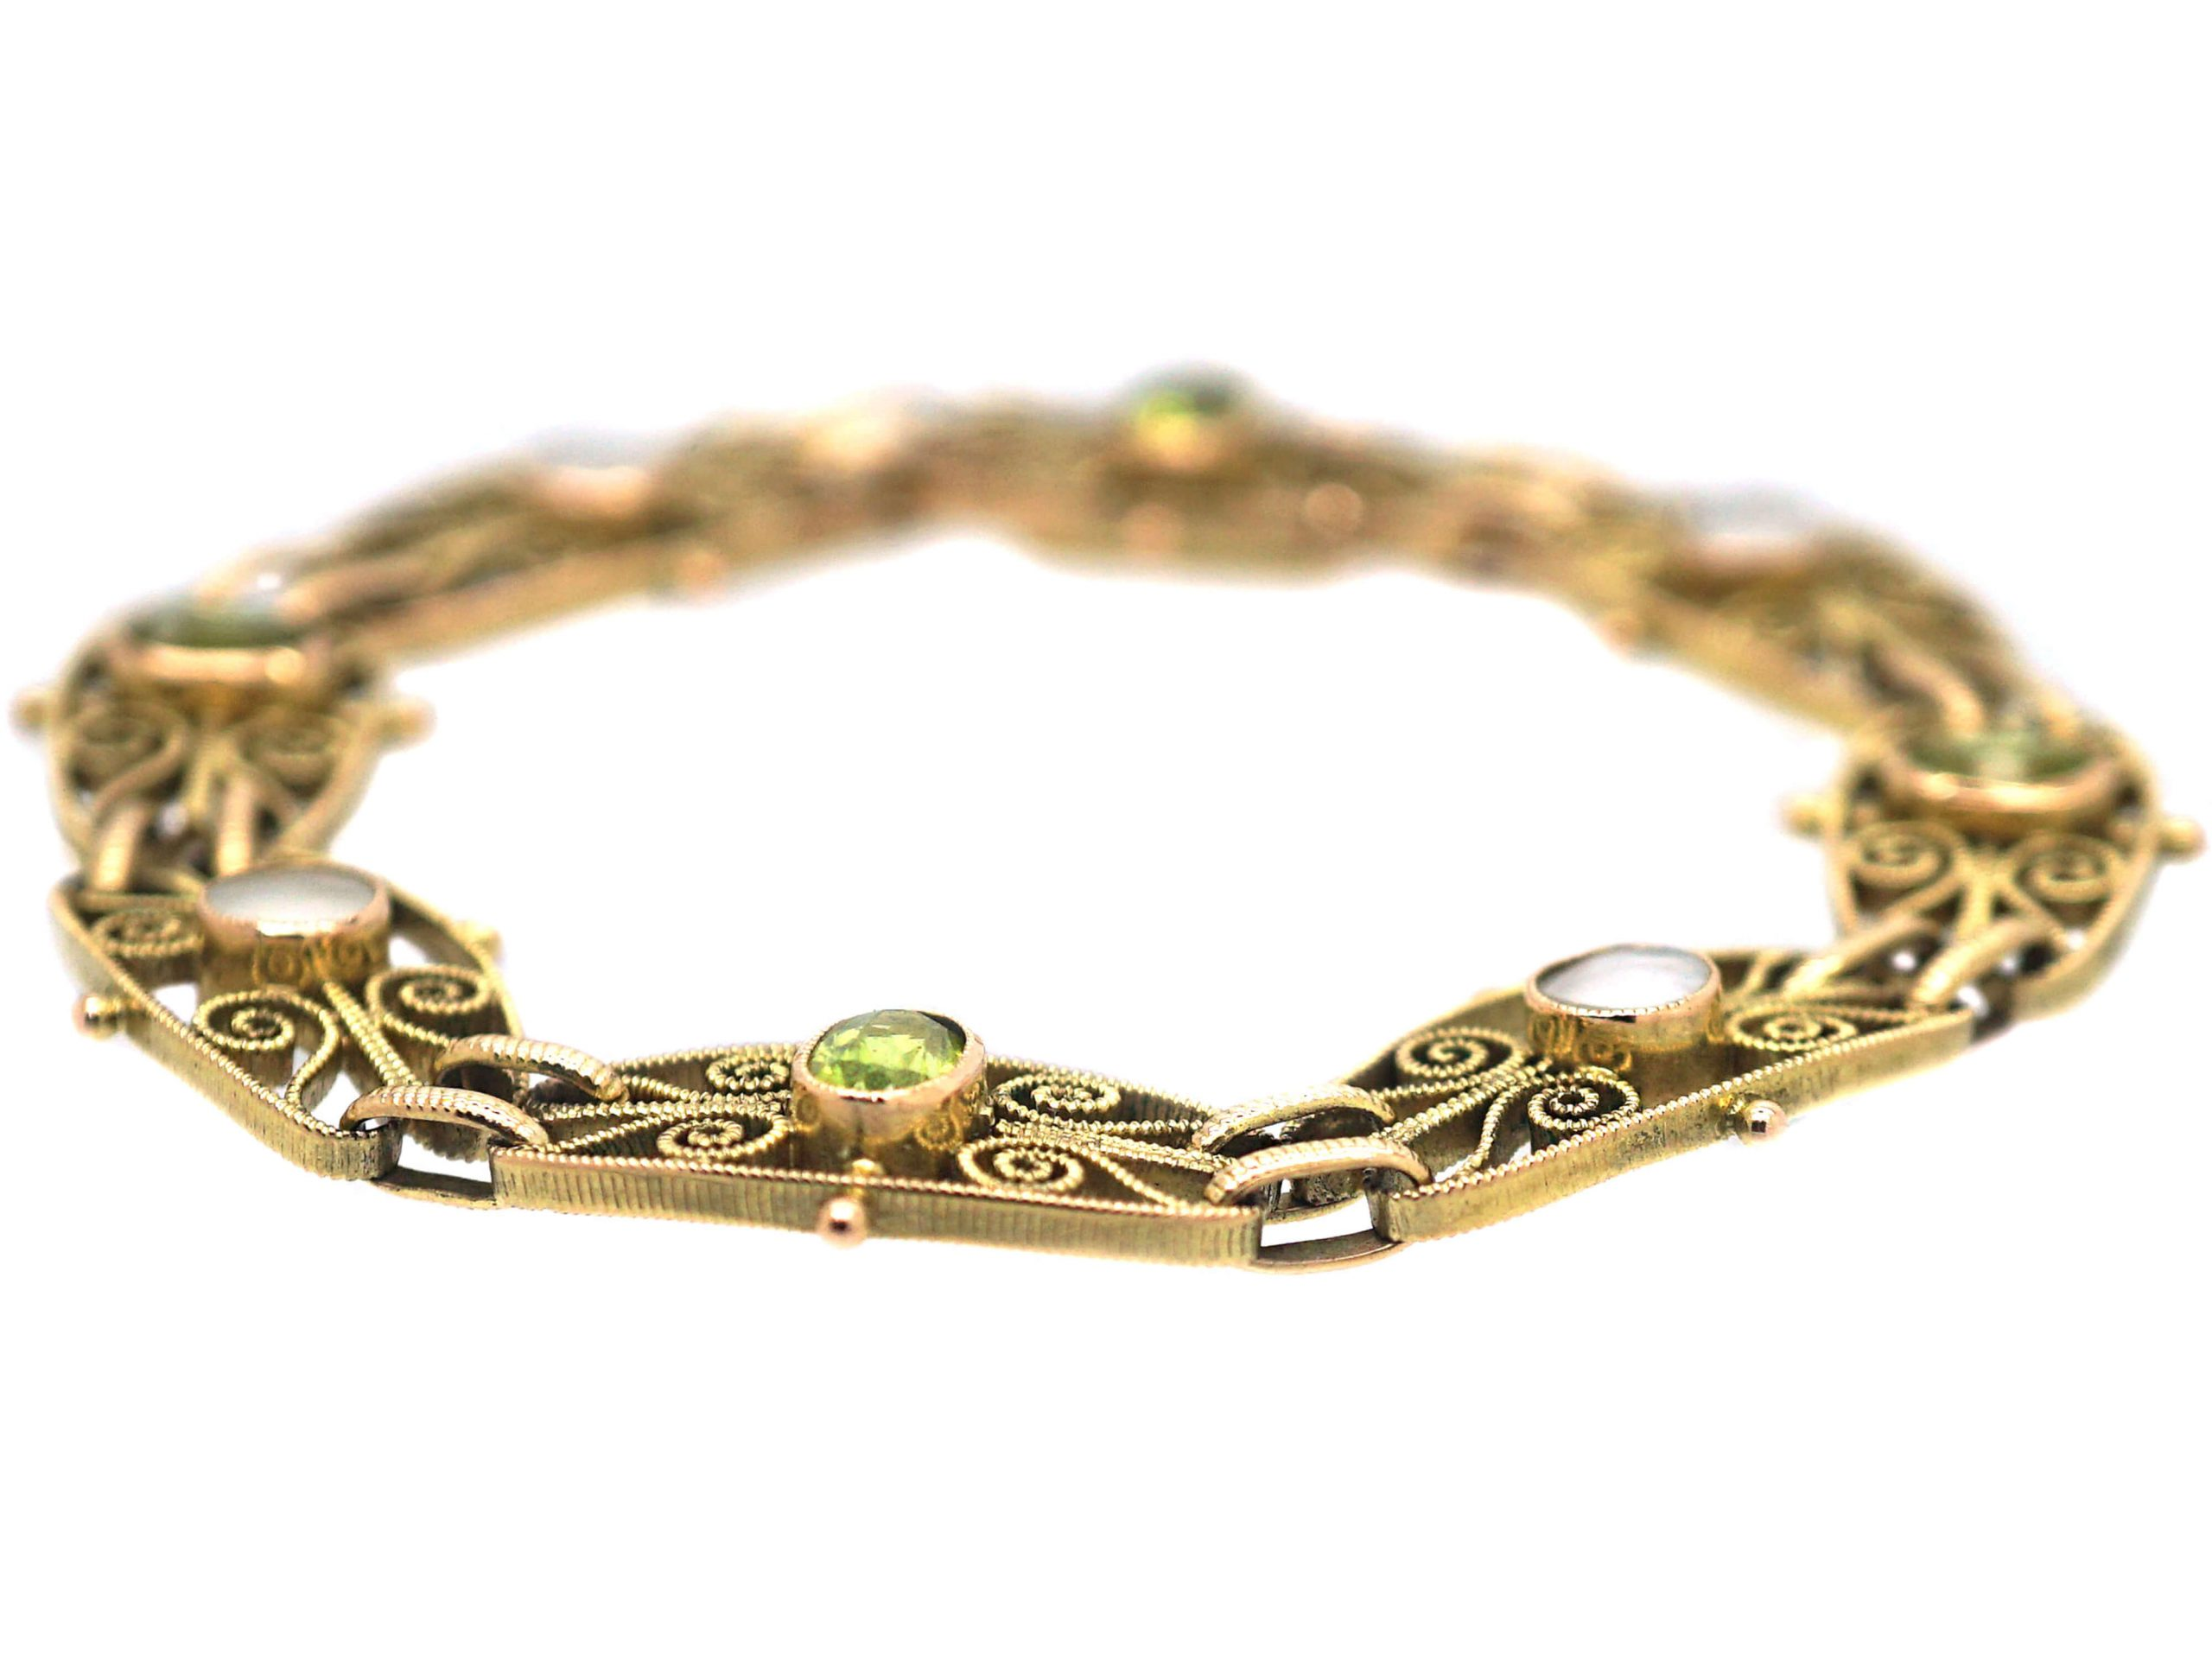 Edwardian 9ct Gold Bracelet set with Peridots & Blister Pearls by Murrle Bennett & Co